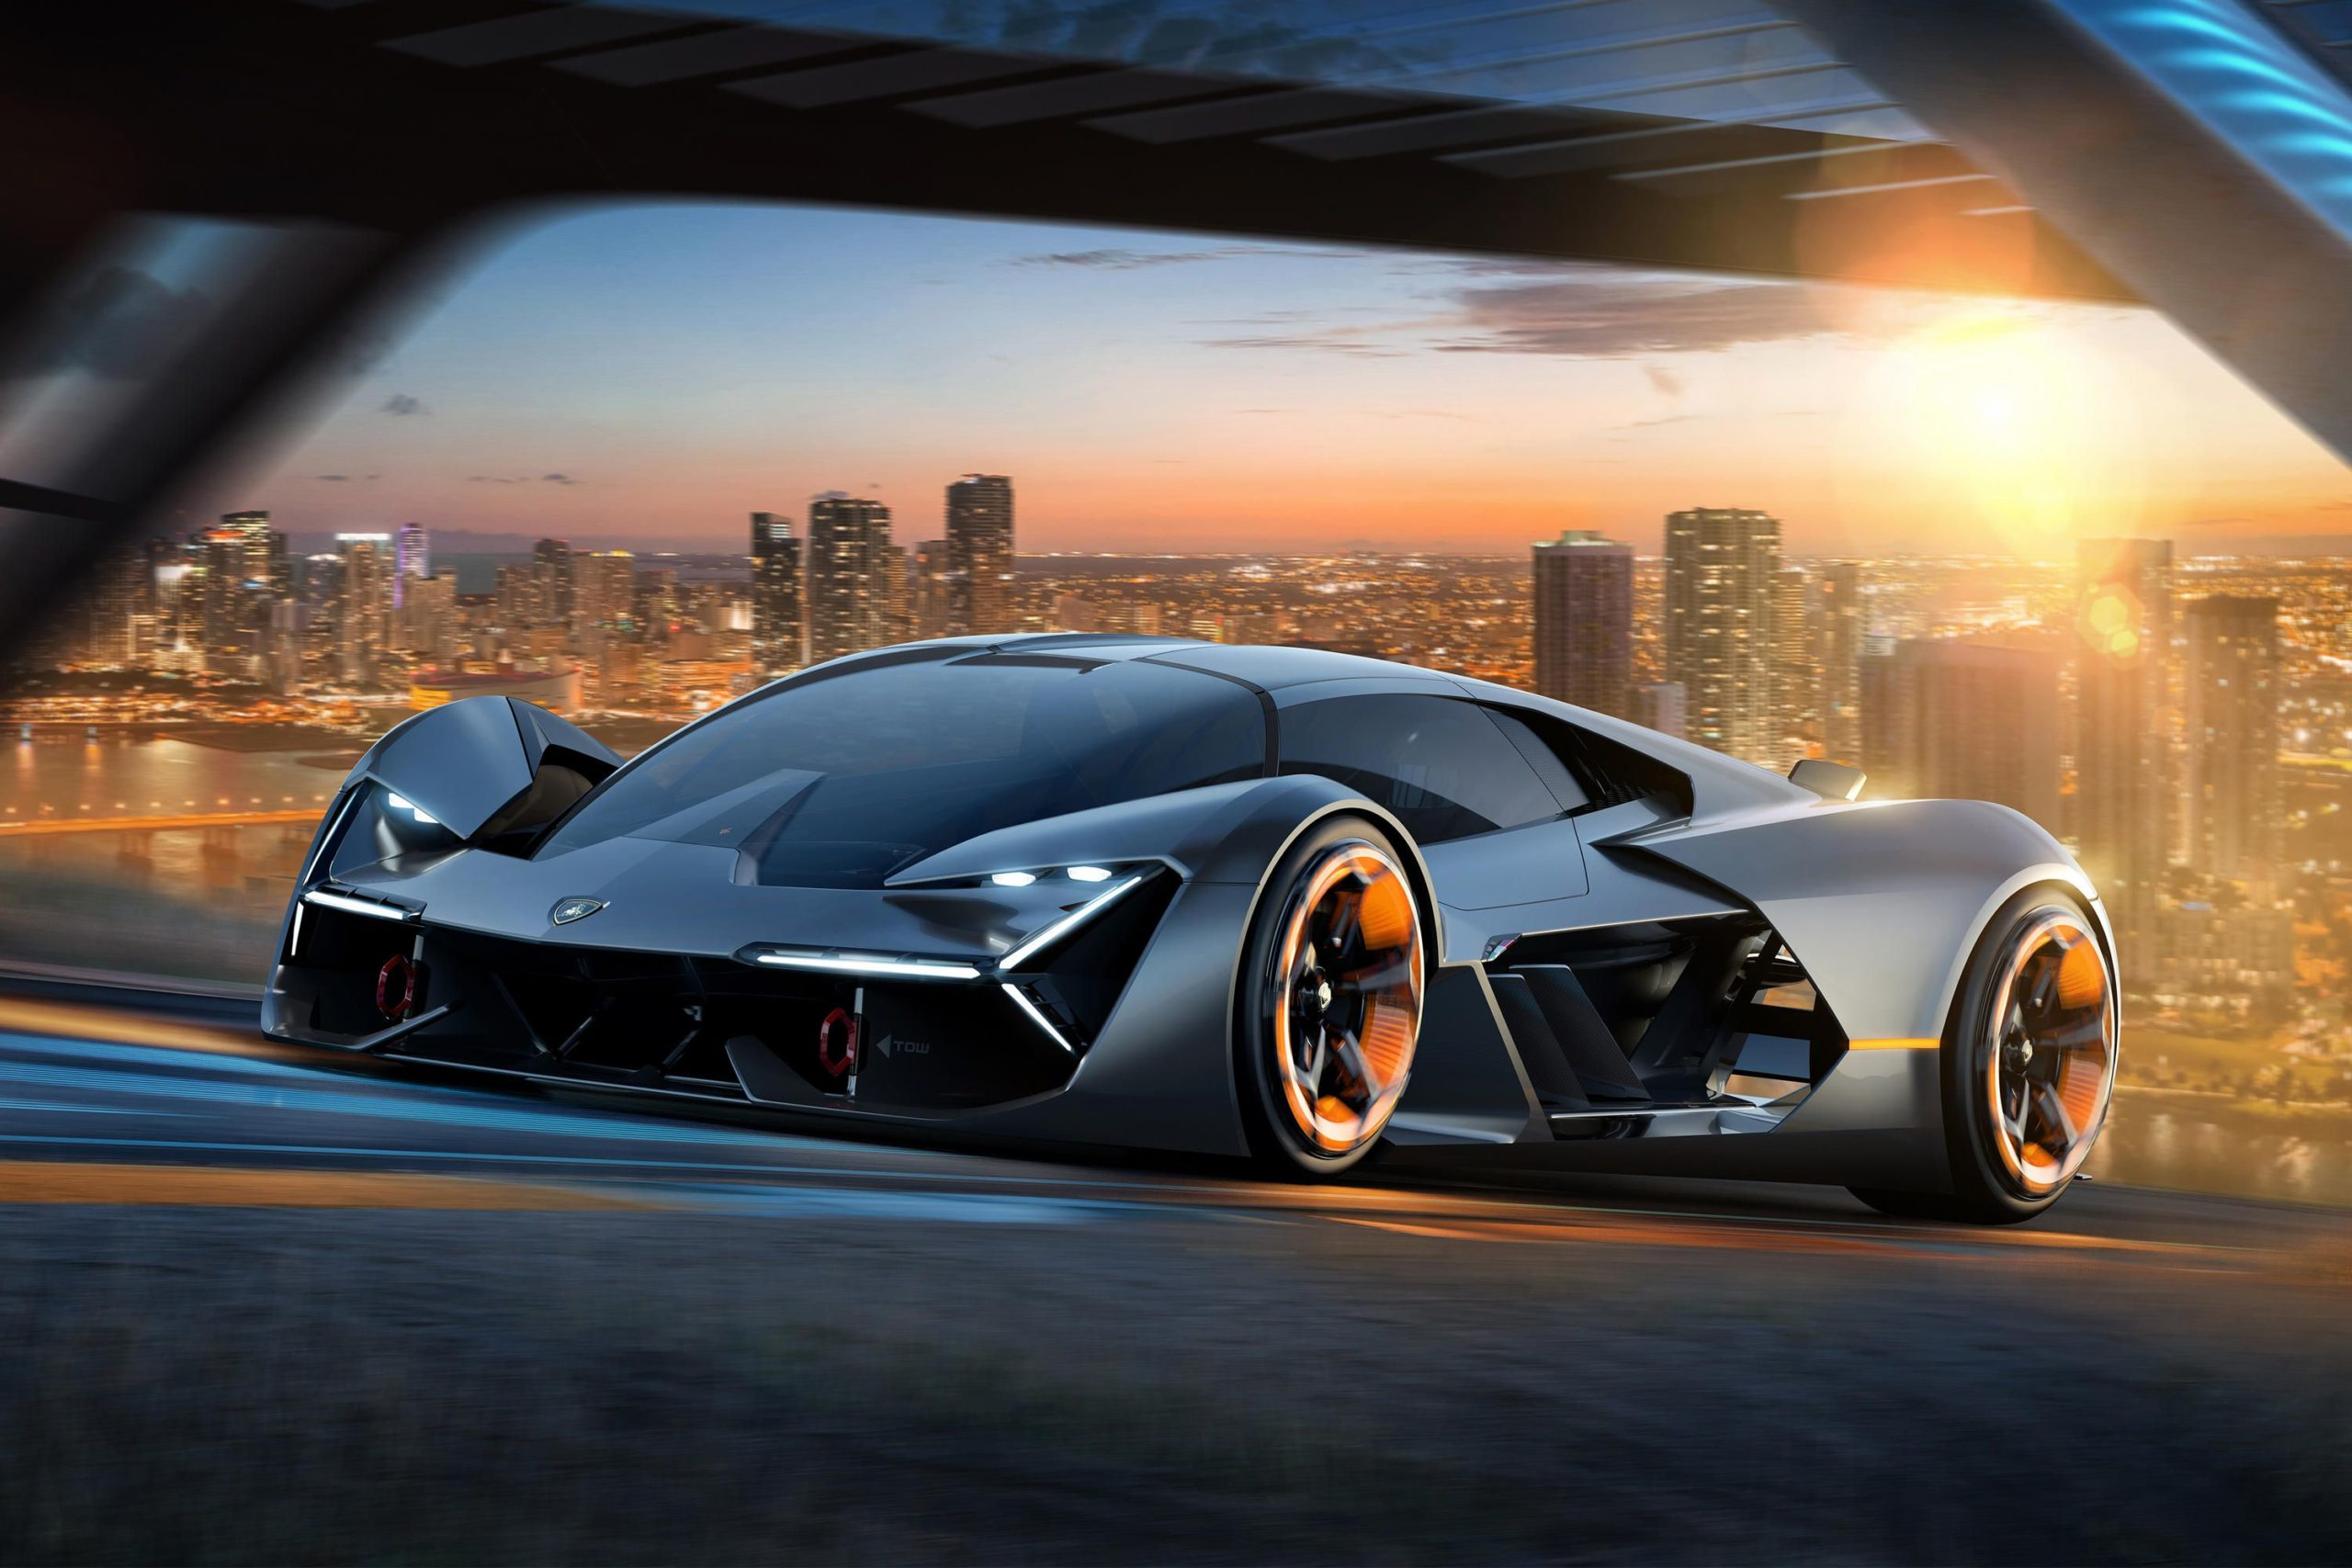 Lamborghini moved away from standard batteries and focused on supercapacitors at their Terzo Millennio concept